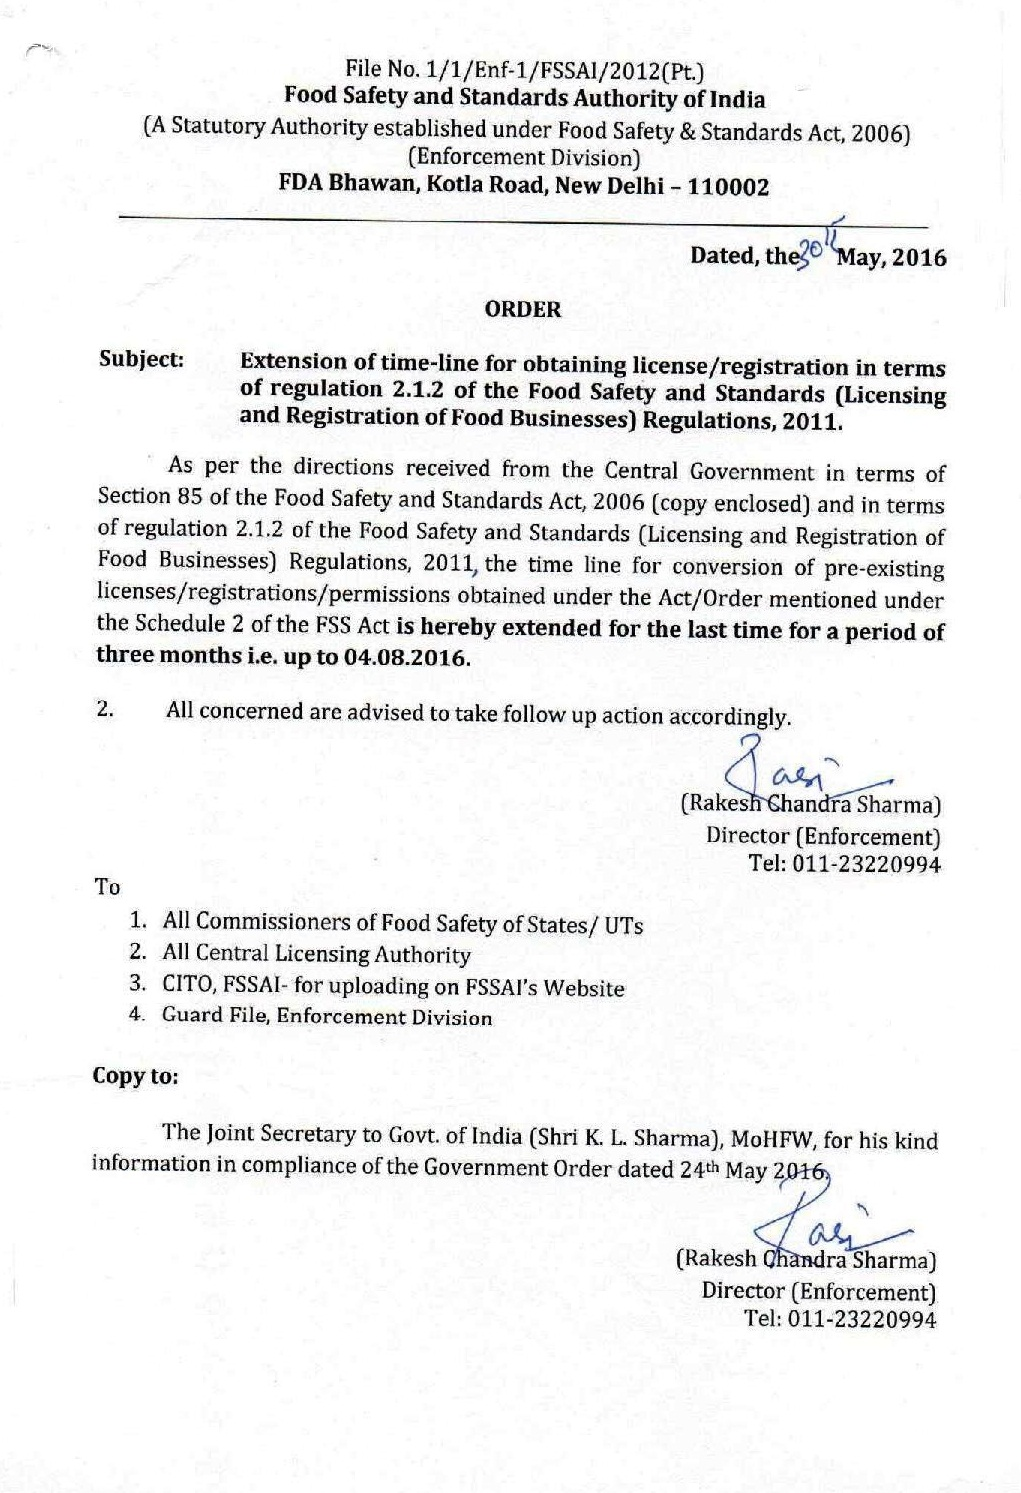 food safety latest  fssai order on extension of timeline for obtaining license registration last time upto 4 8 2016